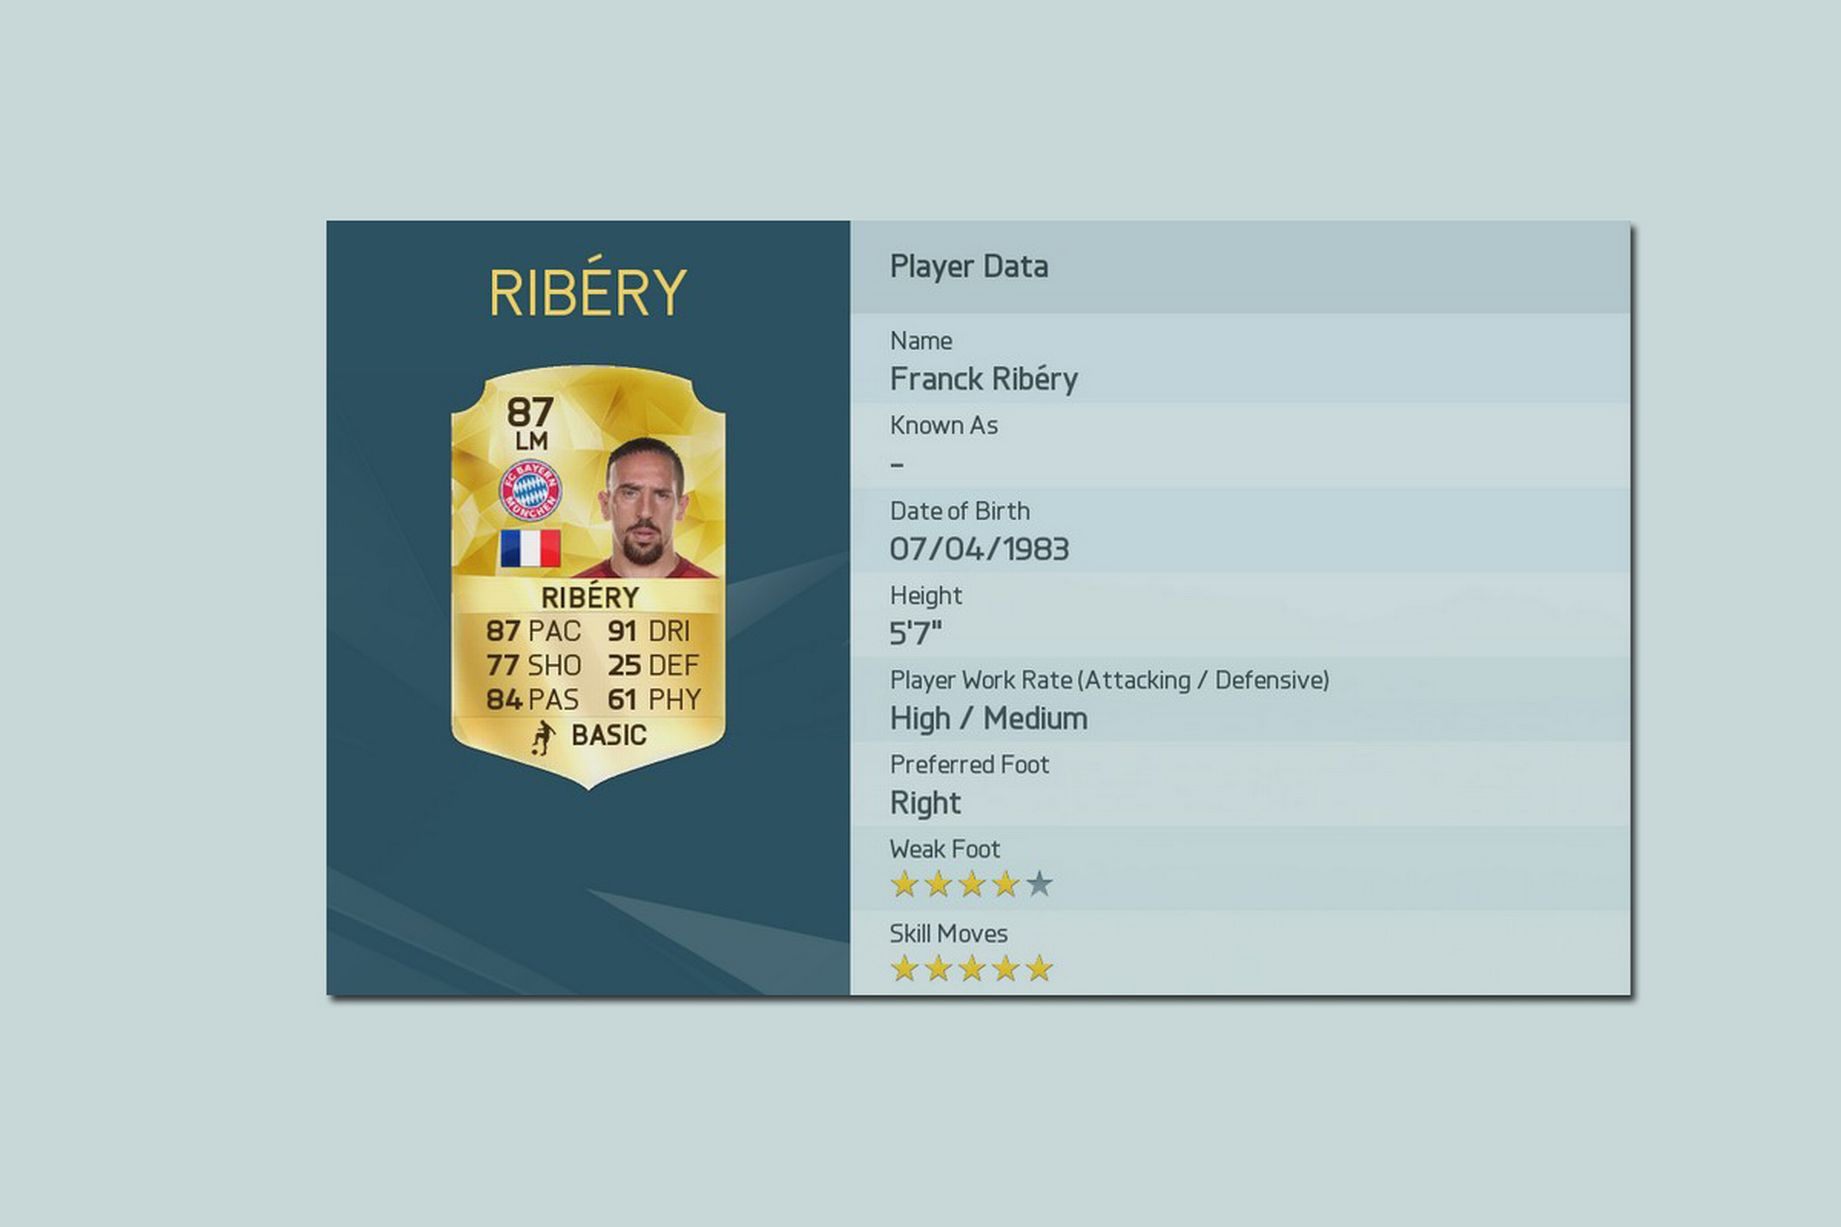 Fifa-16-Player-Ratings-5-star-skillers (11)